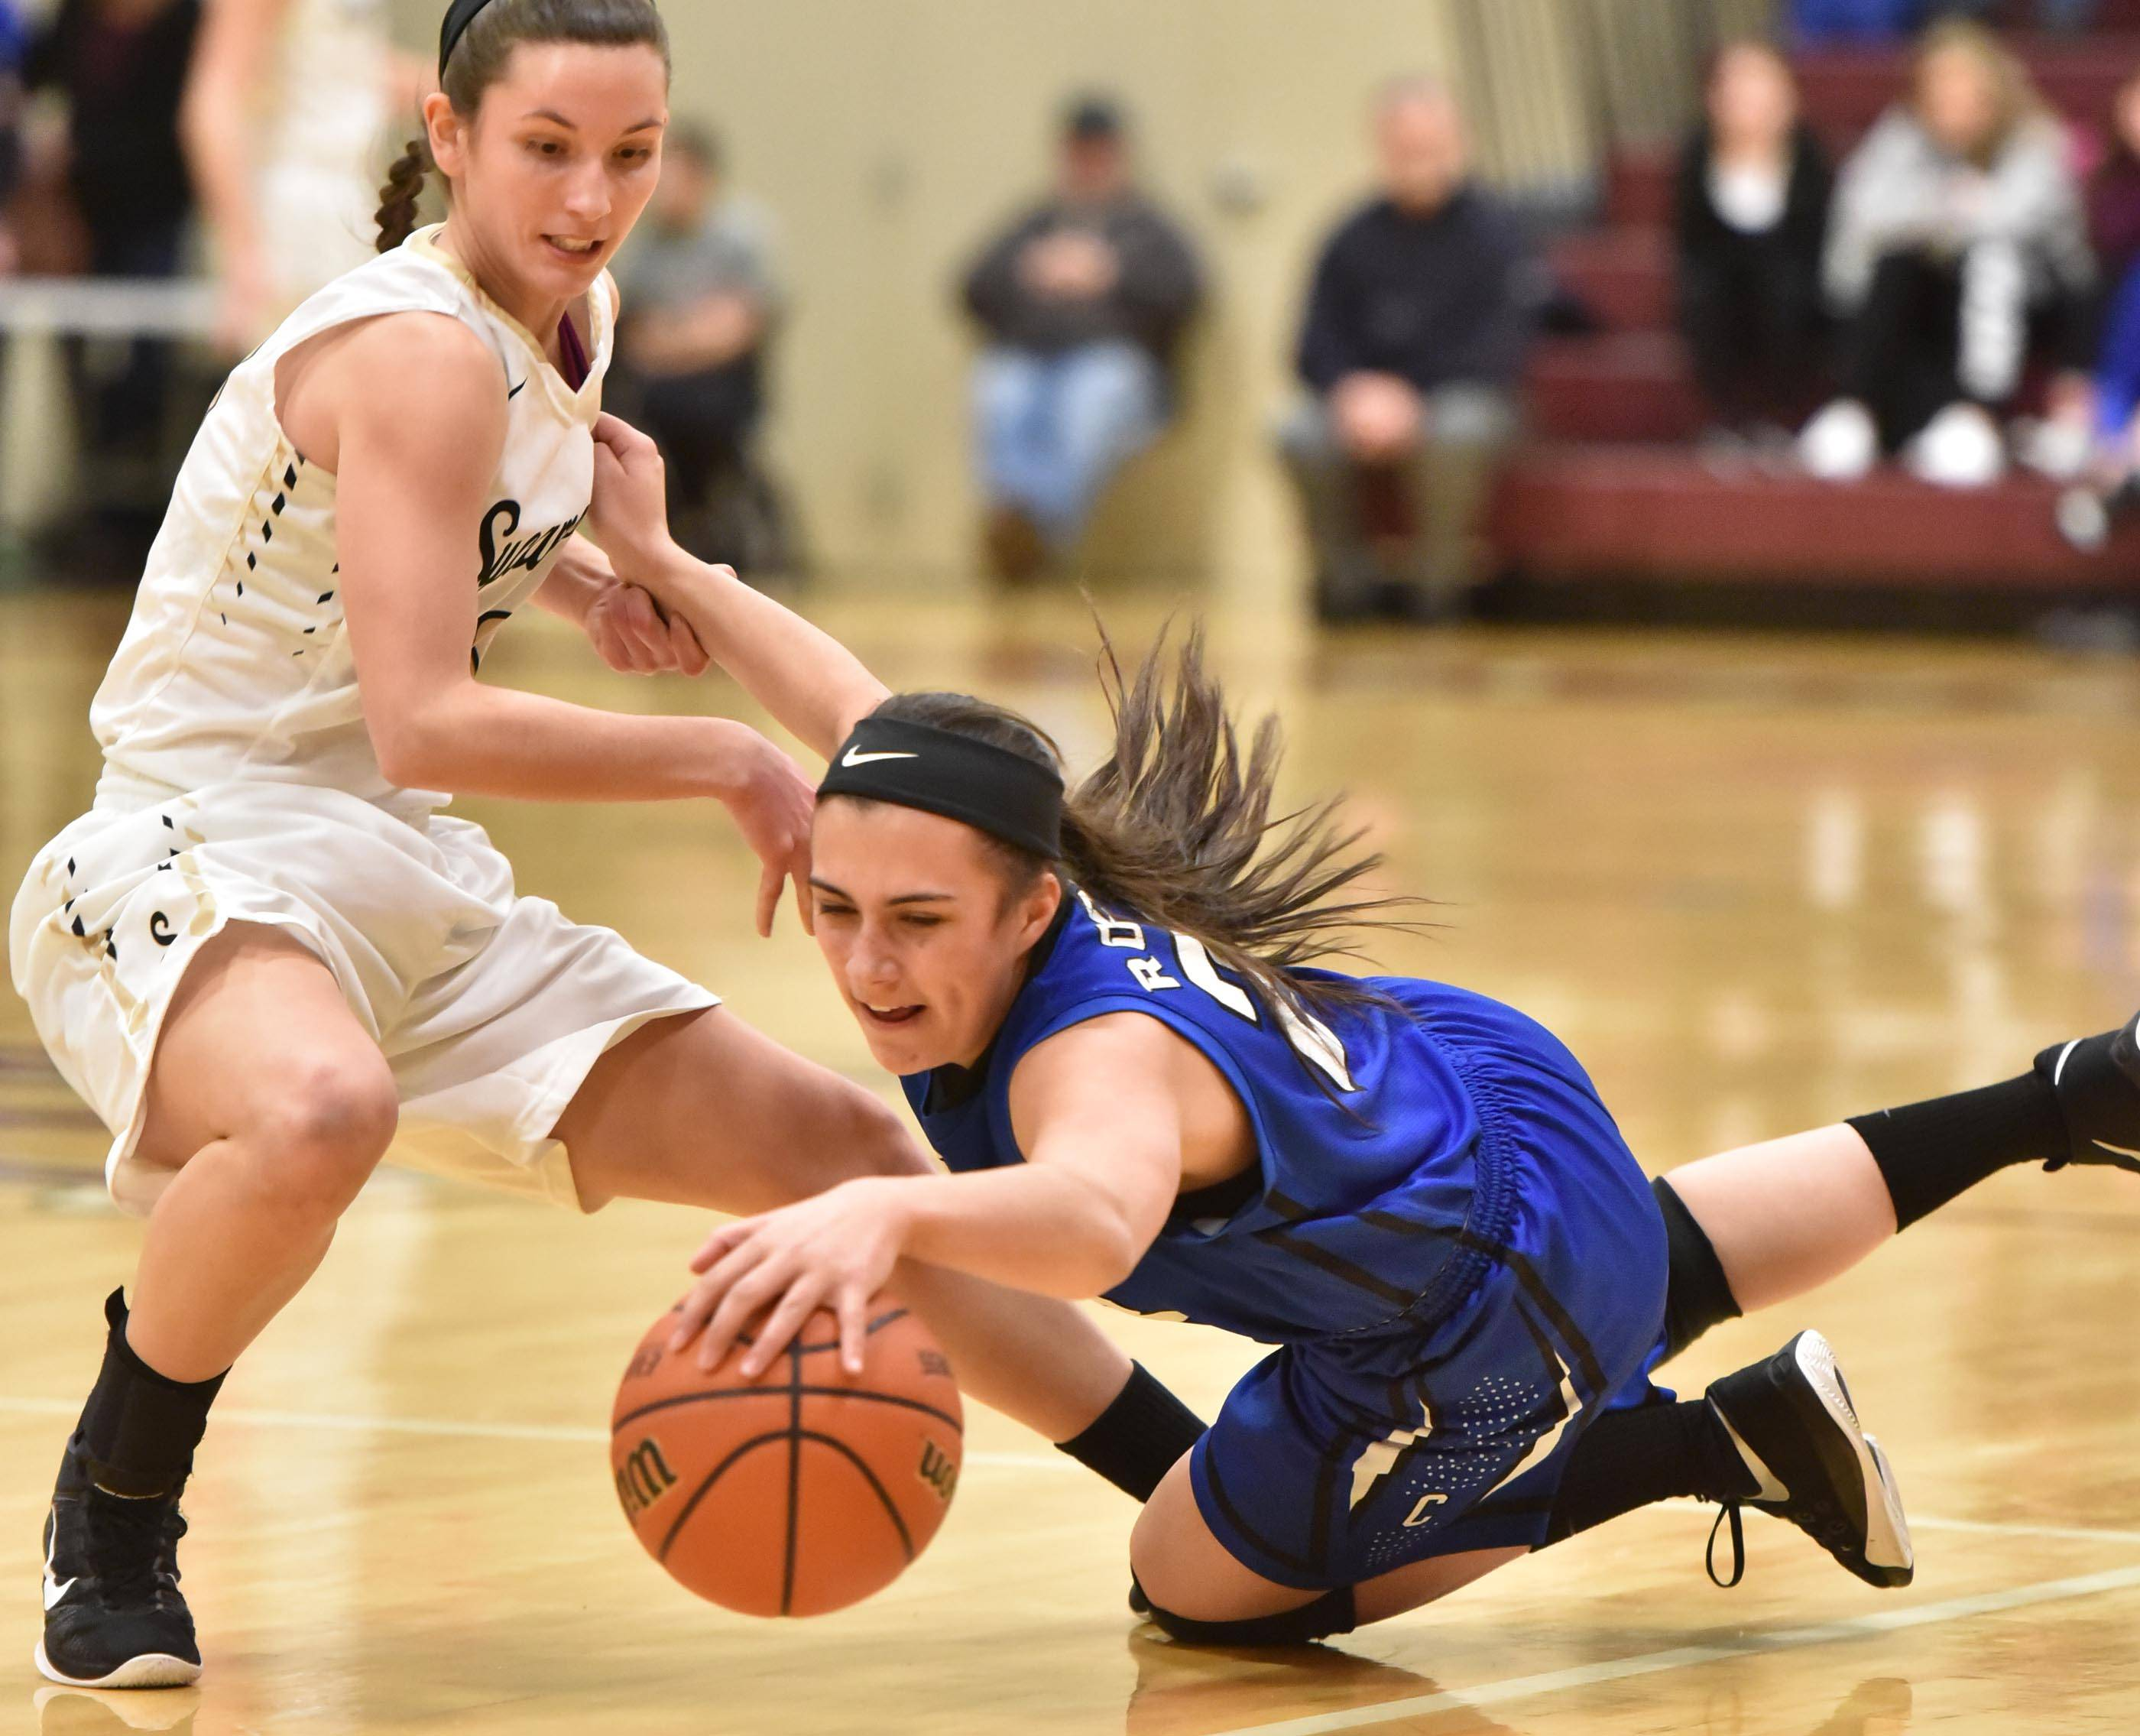 Burlington Central's Maddie Drescher dives for a loose ball as Sycamore's Taryn Mathey defends in the girls basketball regional playoff game at Wheaton Academy Wednesday.